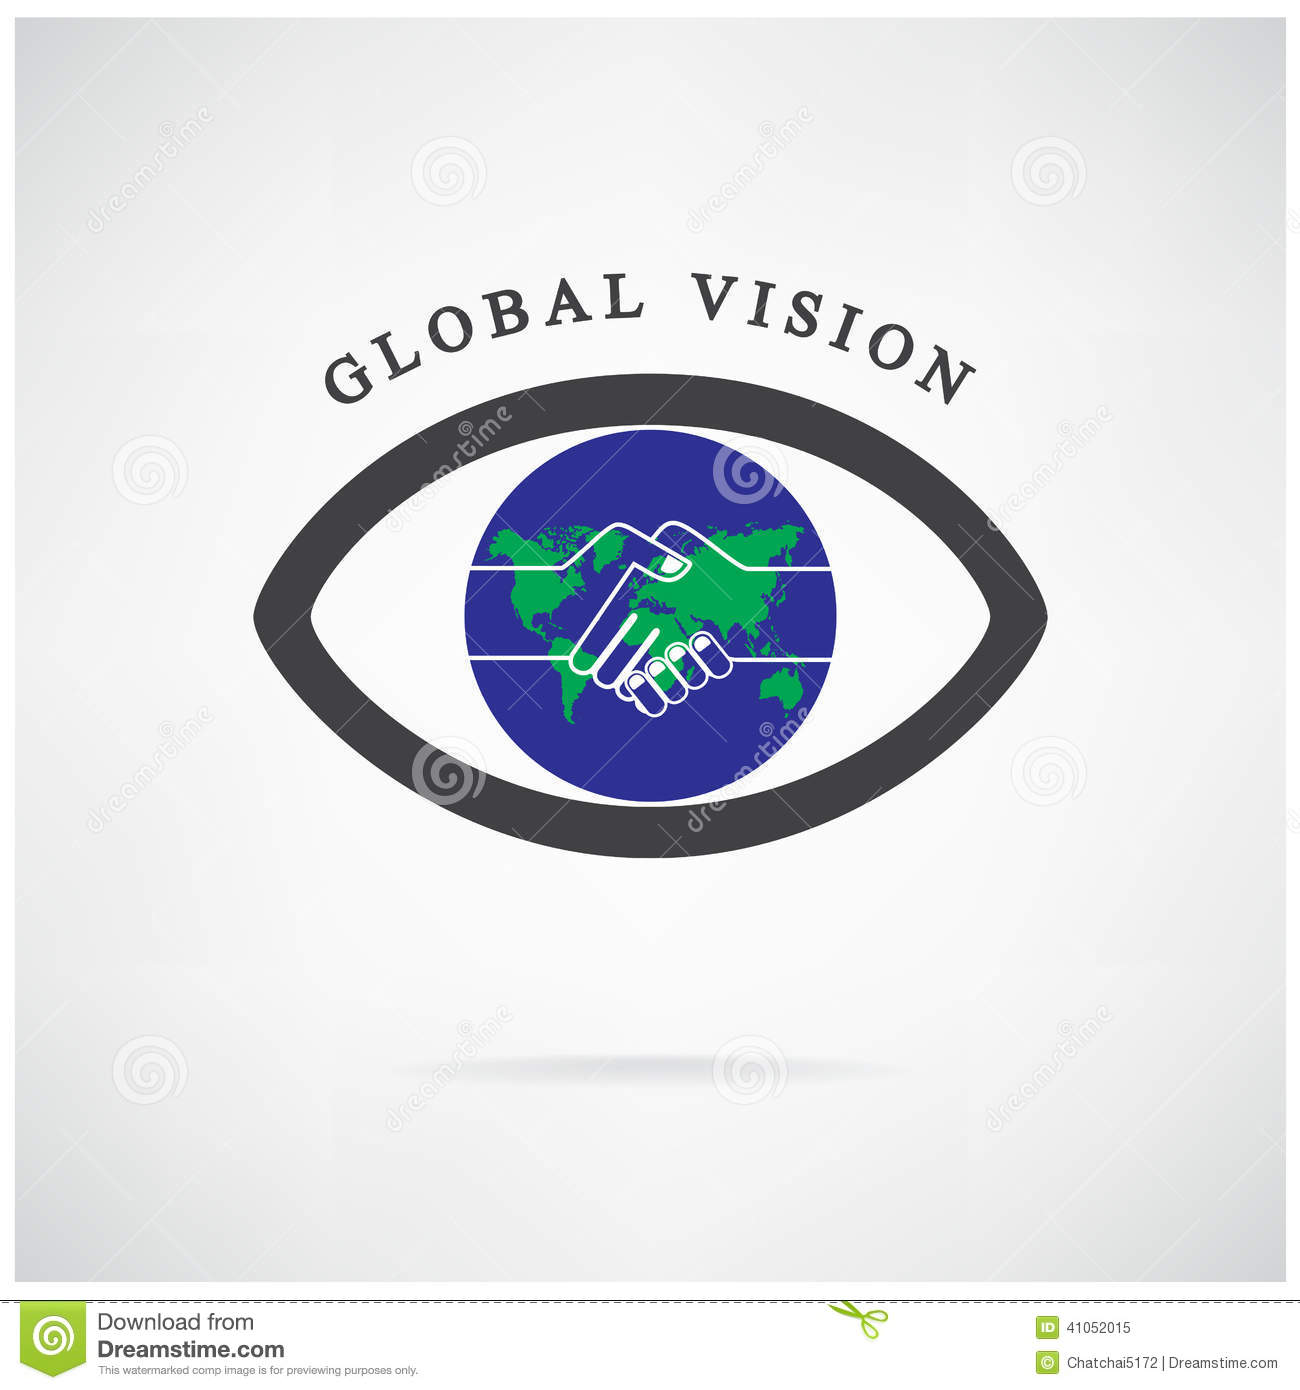 Global vision sign,eye icon,search symbol,business concept.